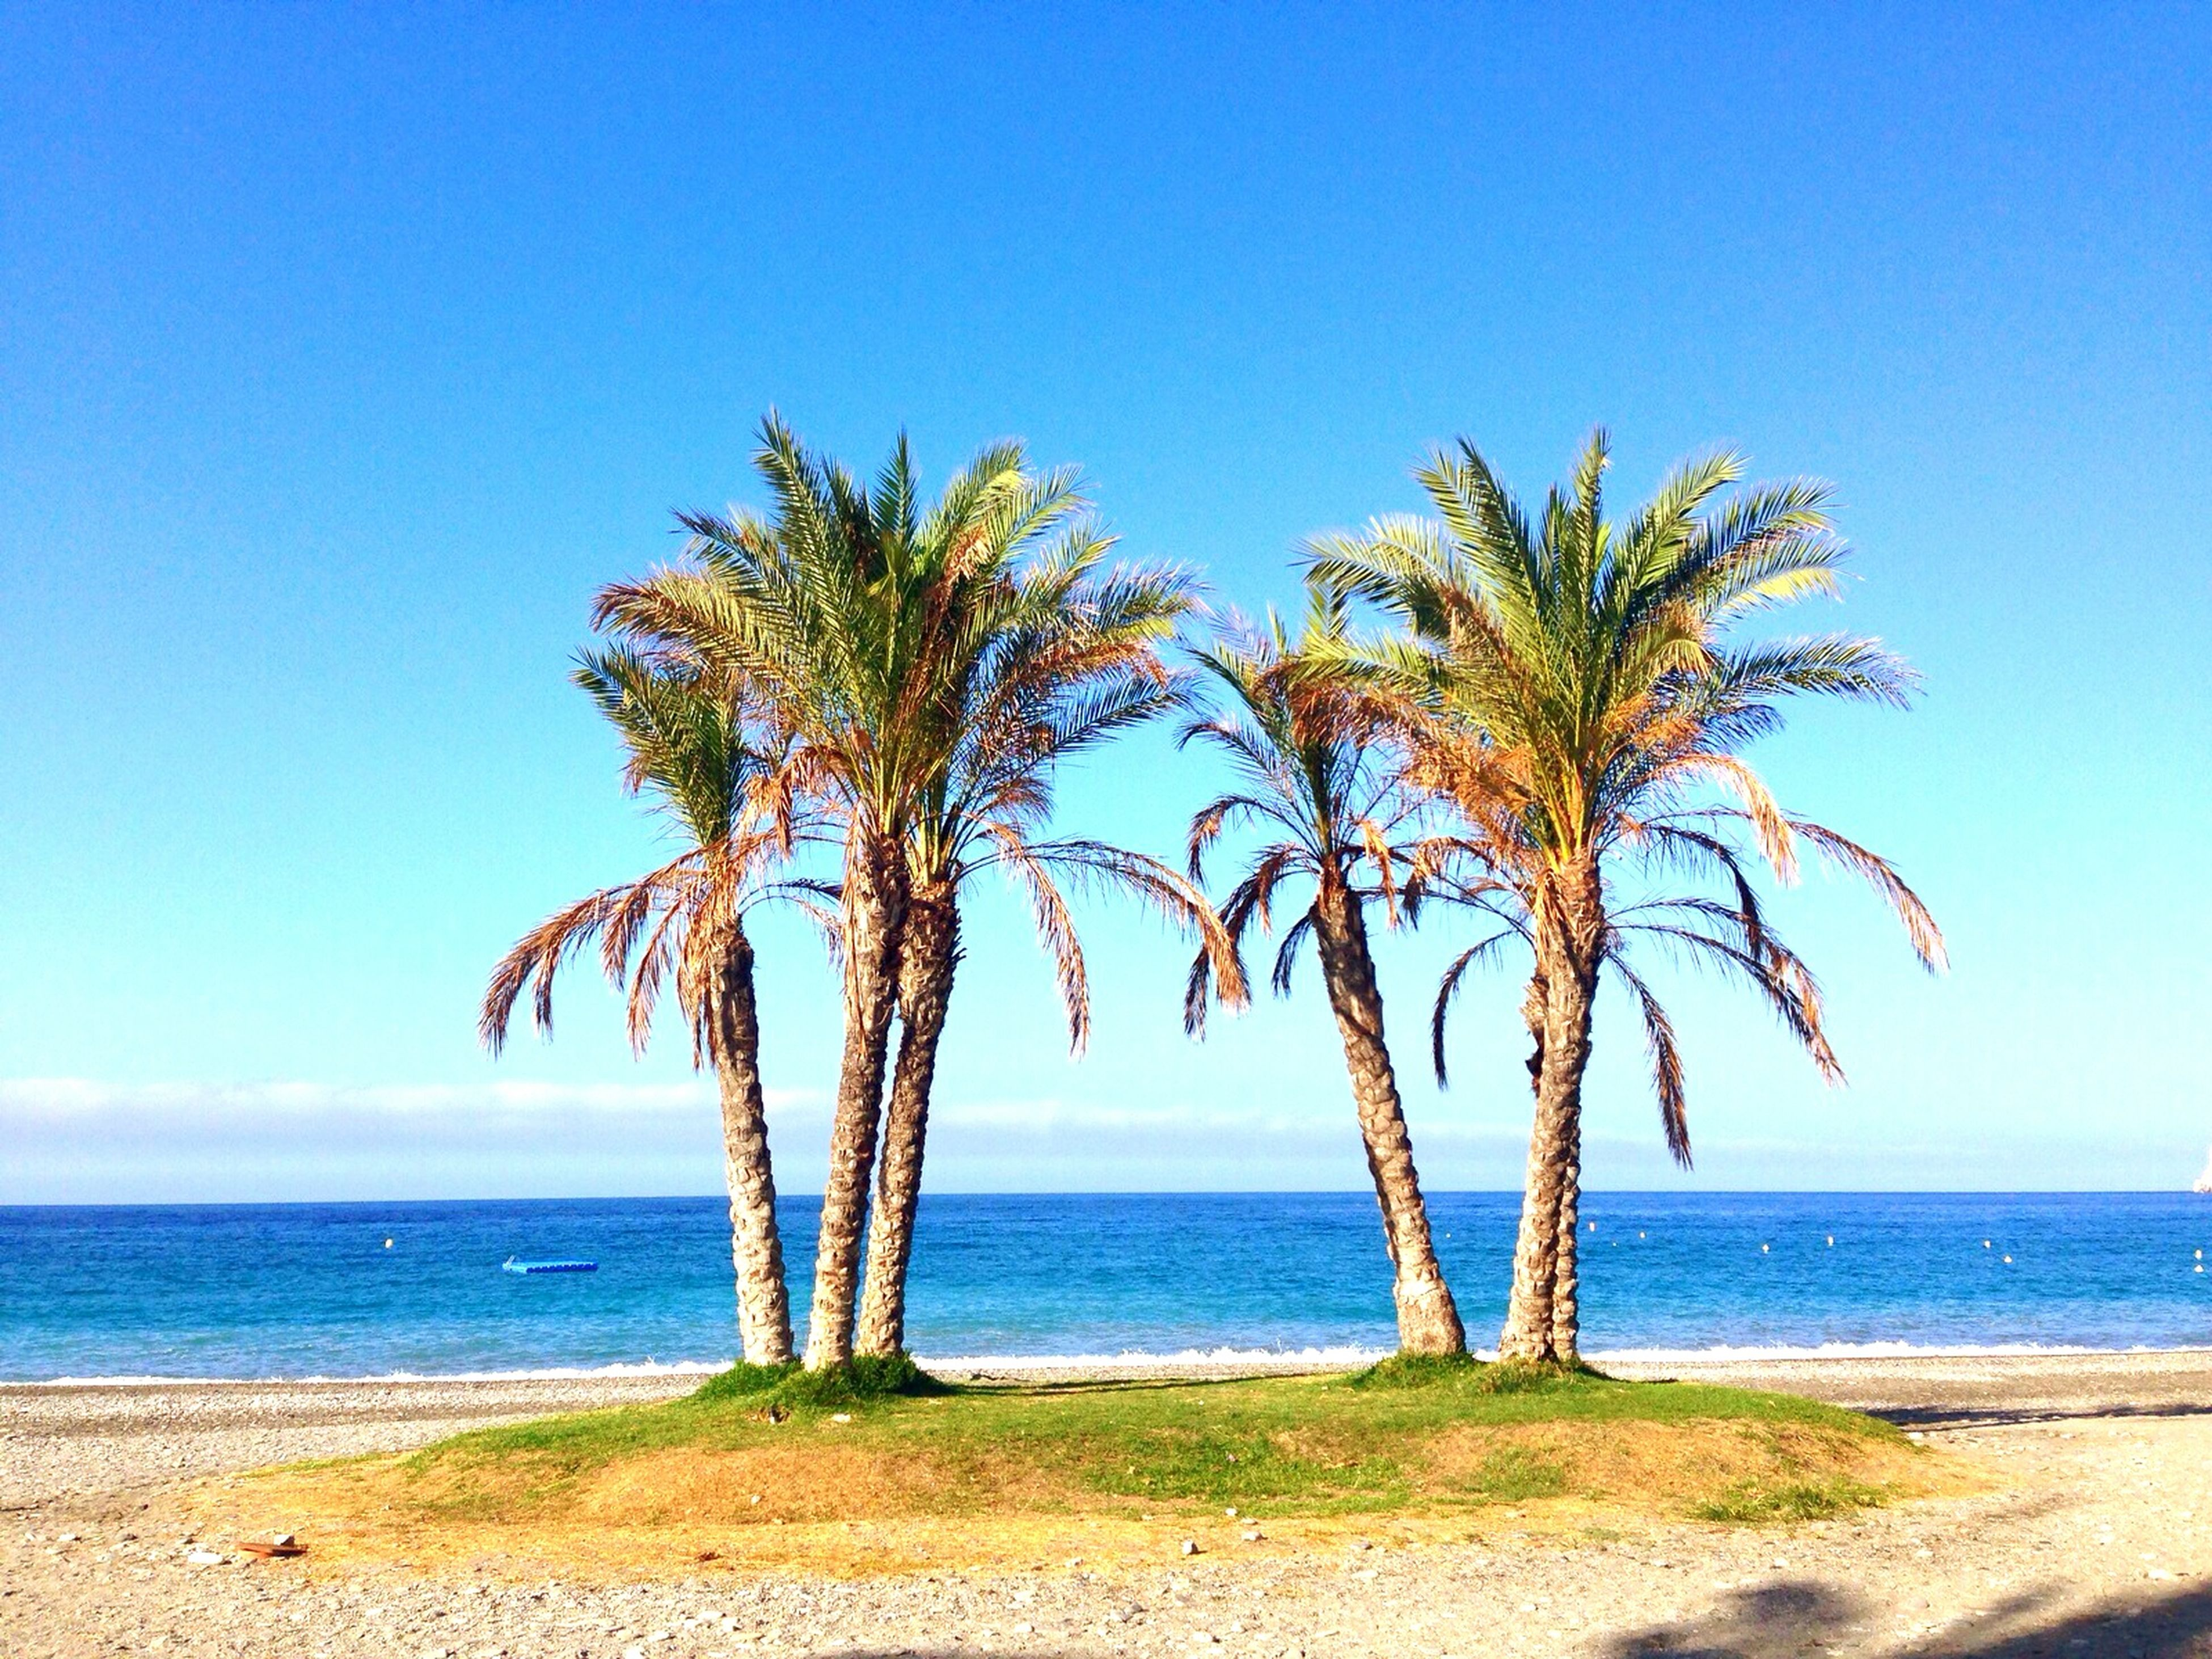 sea, horizon over water, palm tree, water, tranquil scene, tranquility, beach, tree, scenics, beauty in nature, clear sky, blue, nature, shore, tree trunk, sky, growth, idyllic, copy space, sand